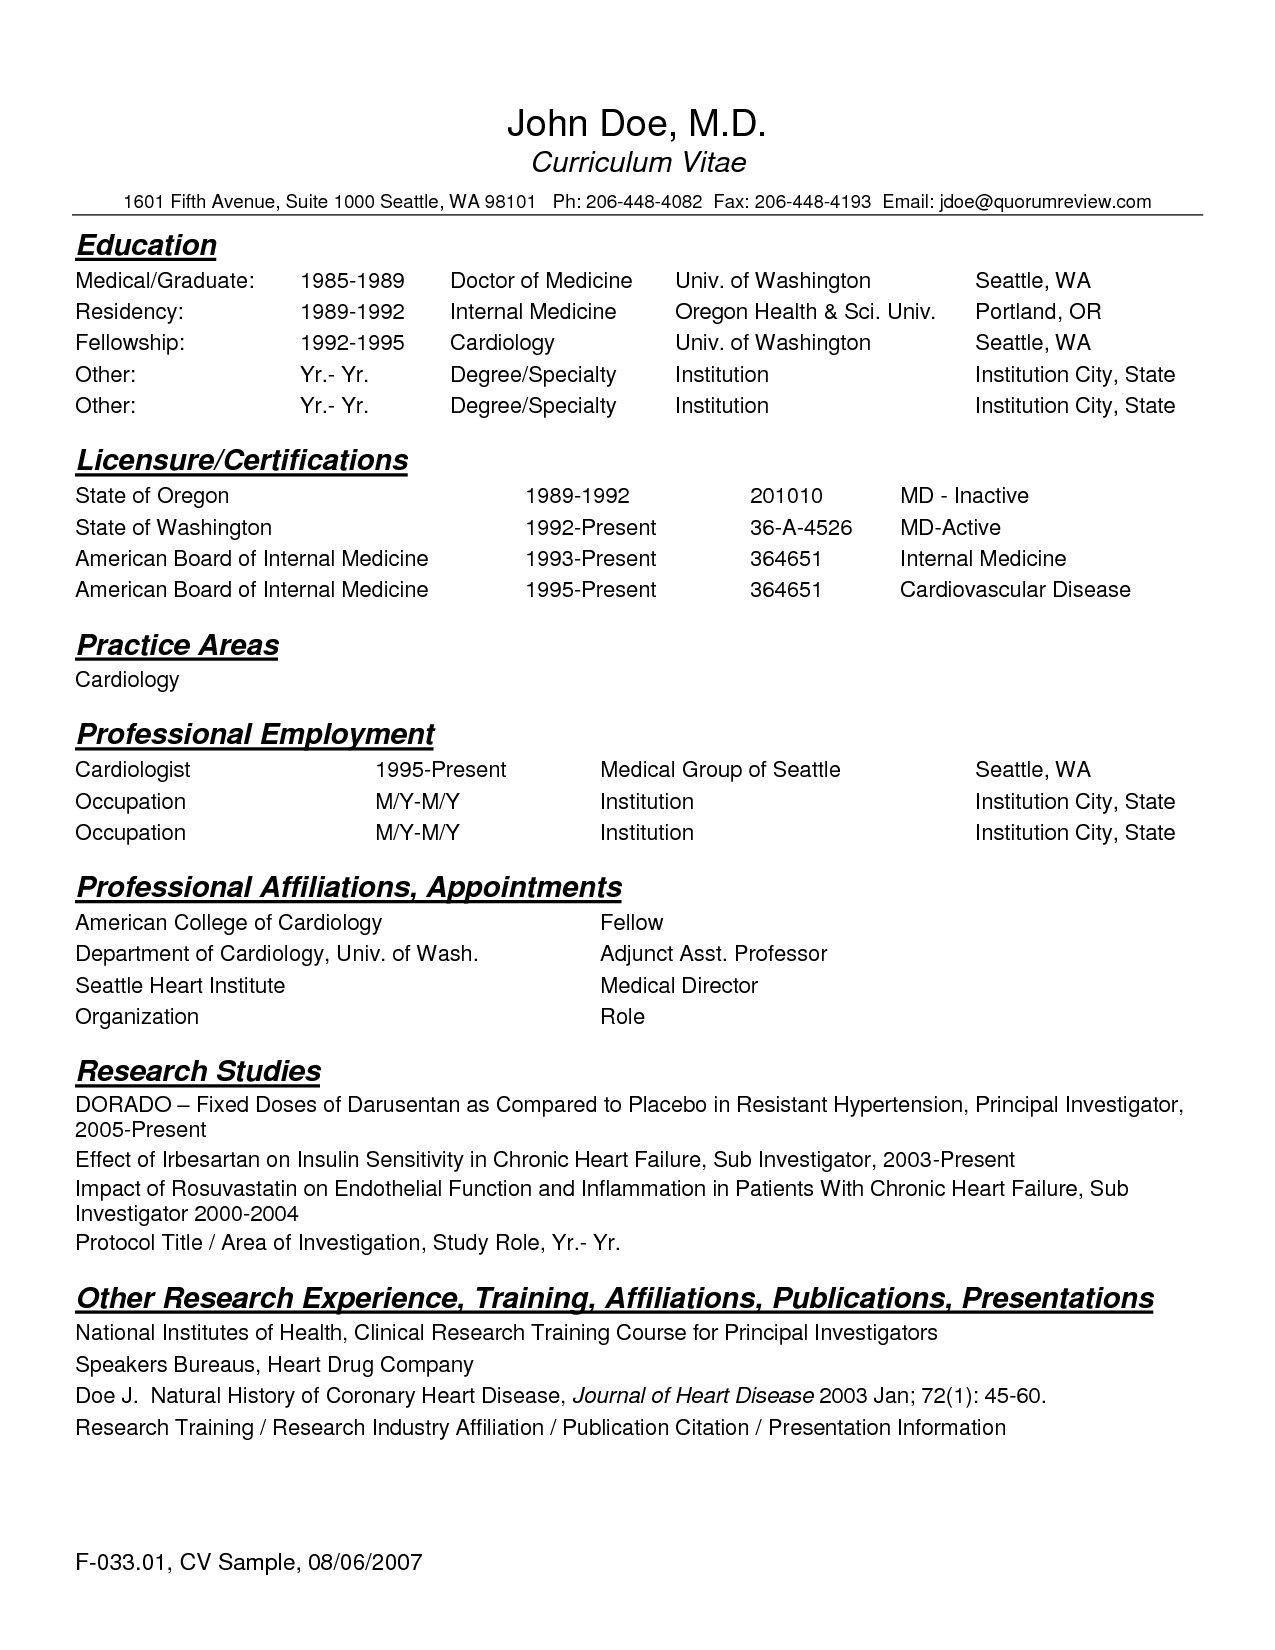 cv template resident physician    cvtemplate  physician  resident  template